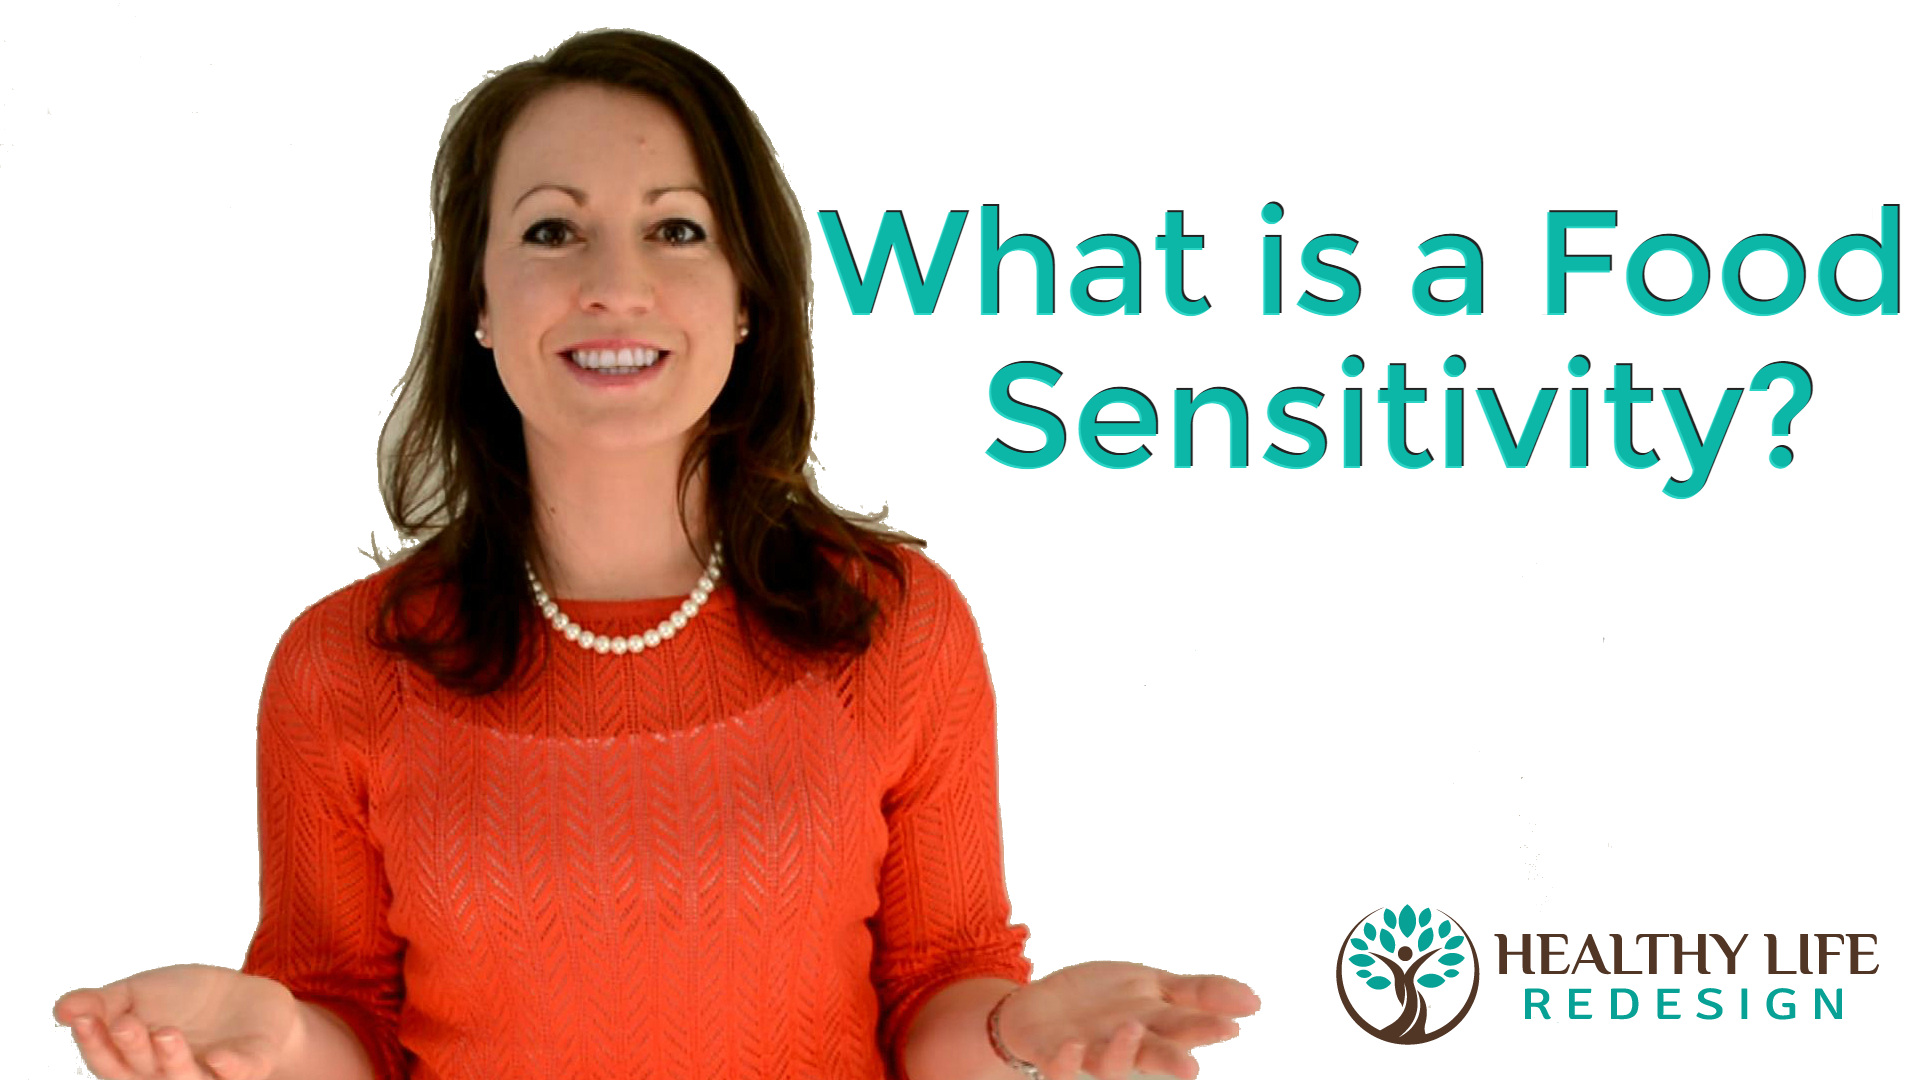 What is a food sensitivity